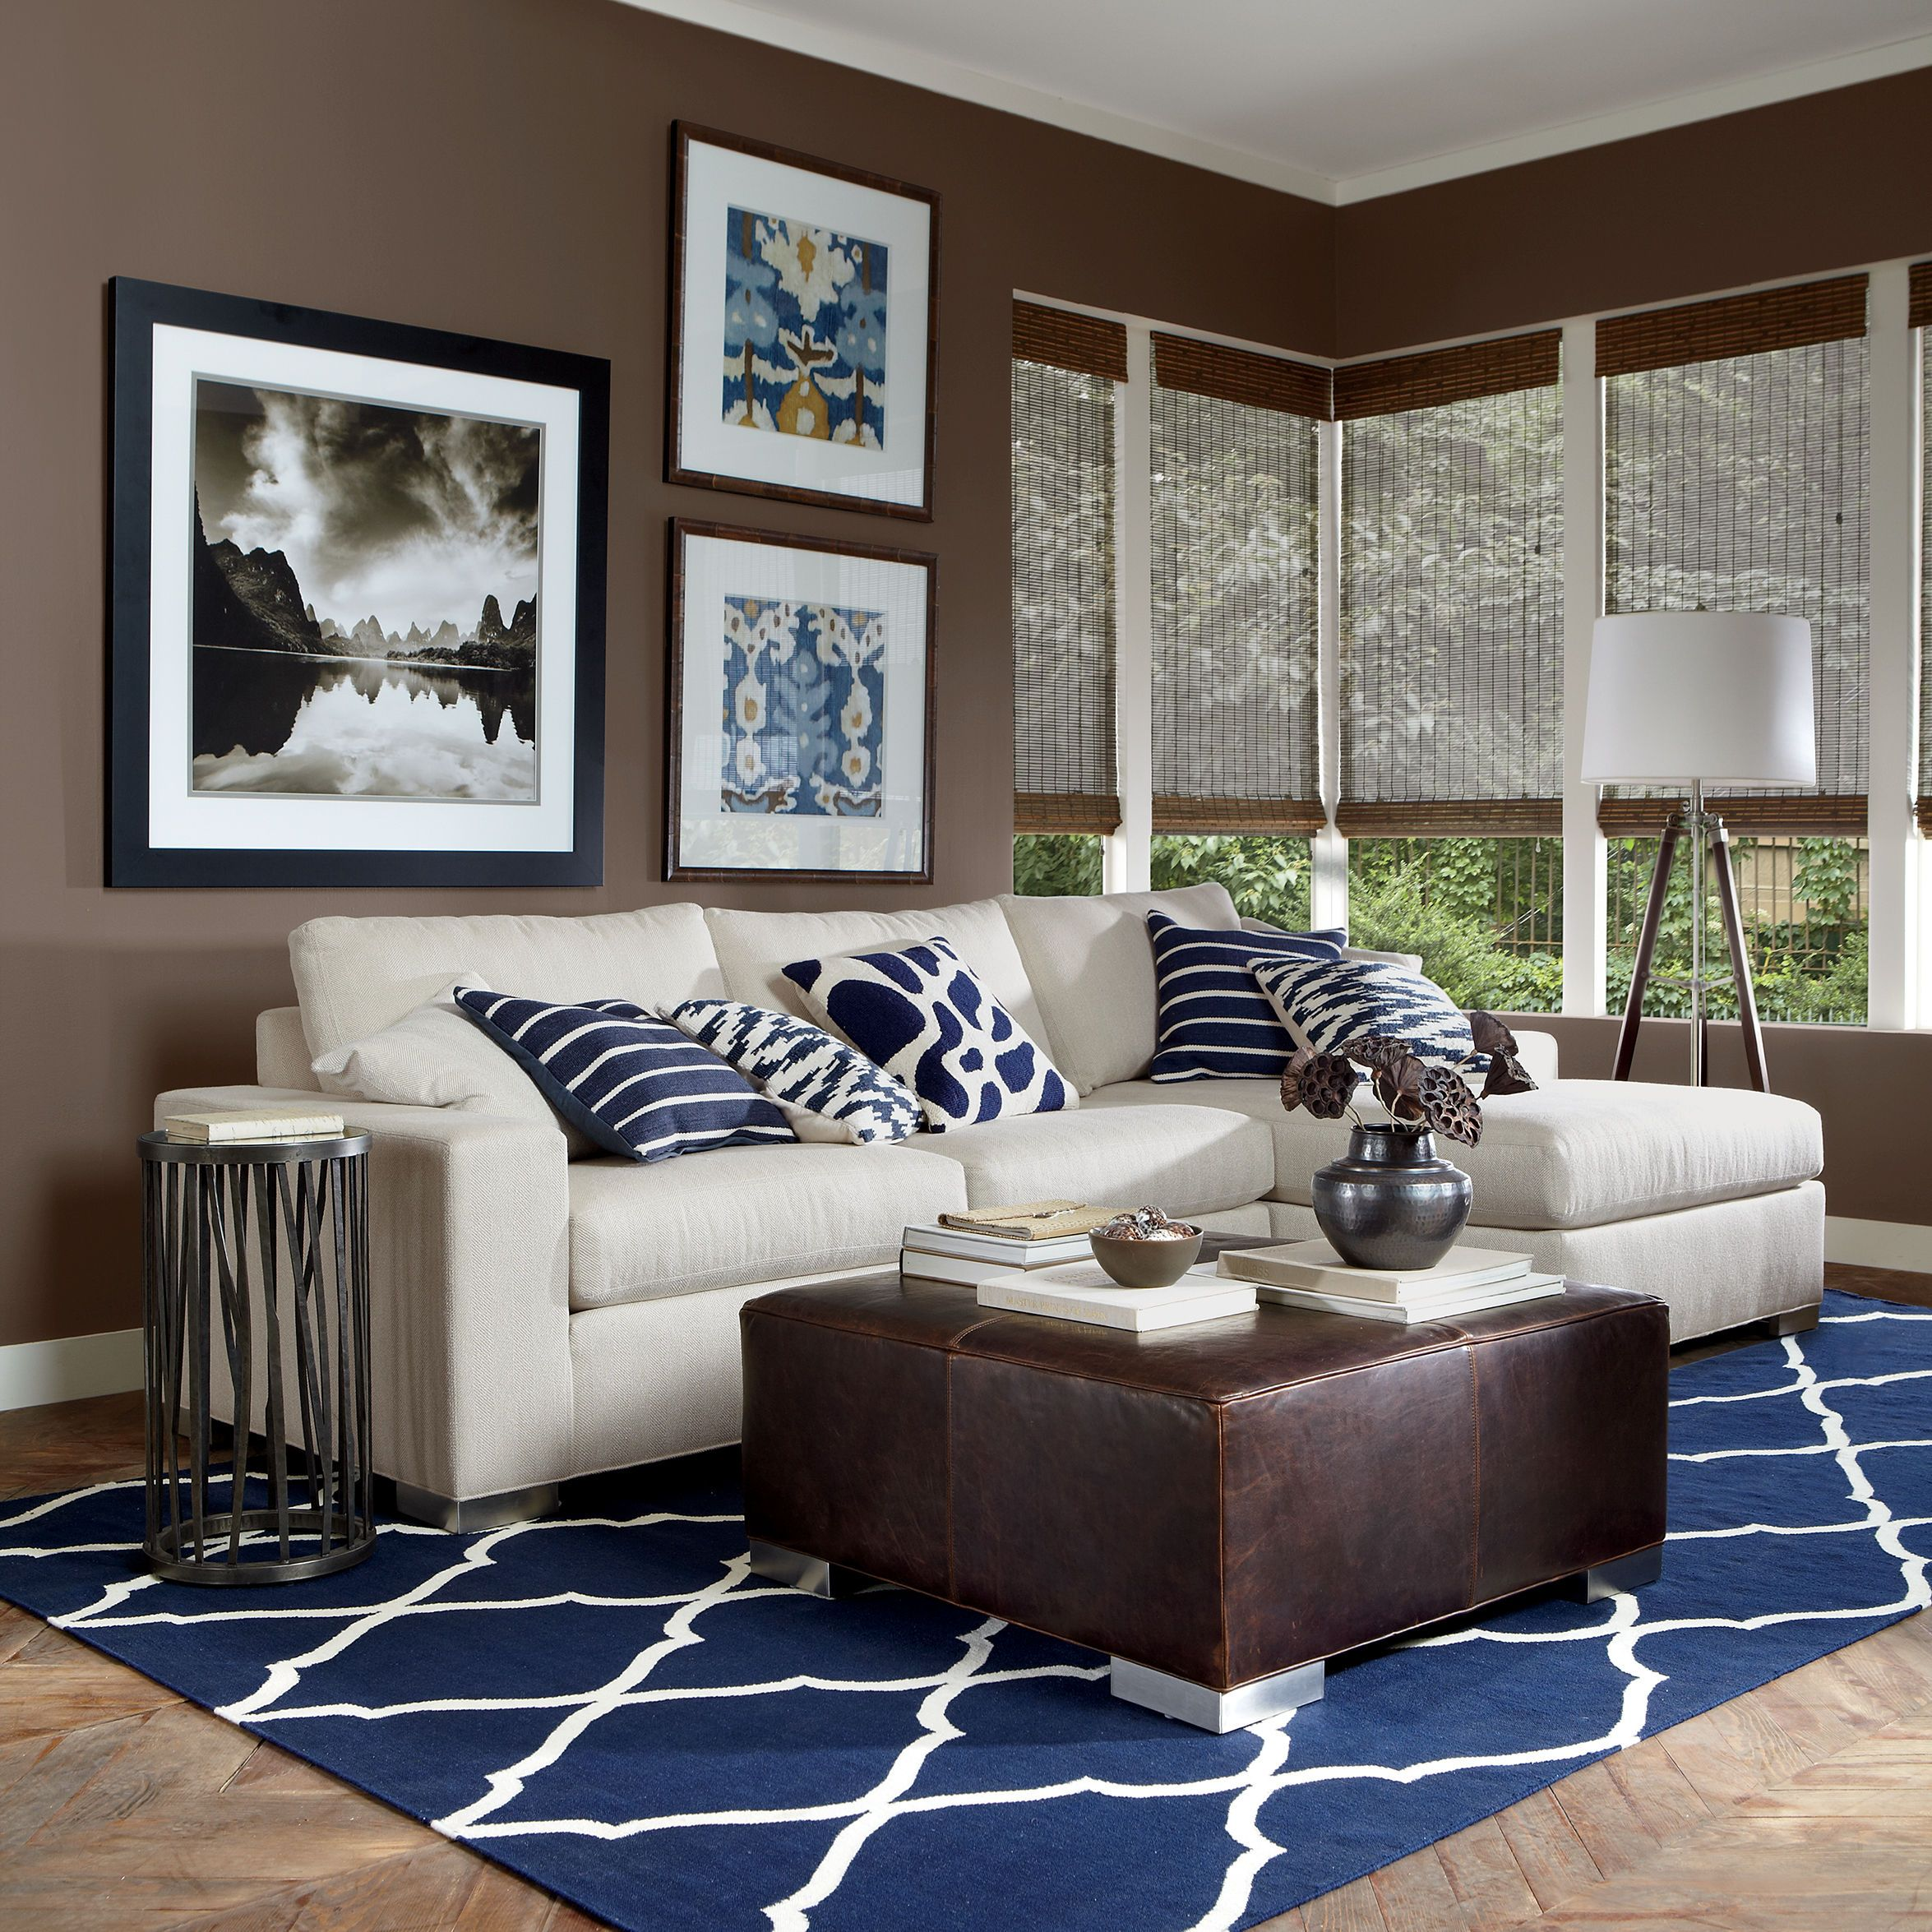 Living Room Color Scheme Ideas Blue Schemes And Home Sophisticated Gray A Striking Focal Point With Wall Of Grey